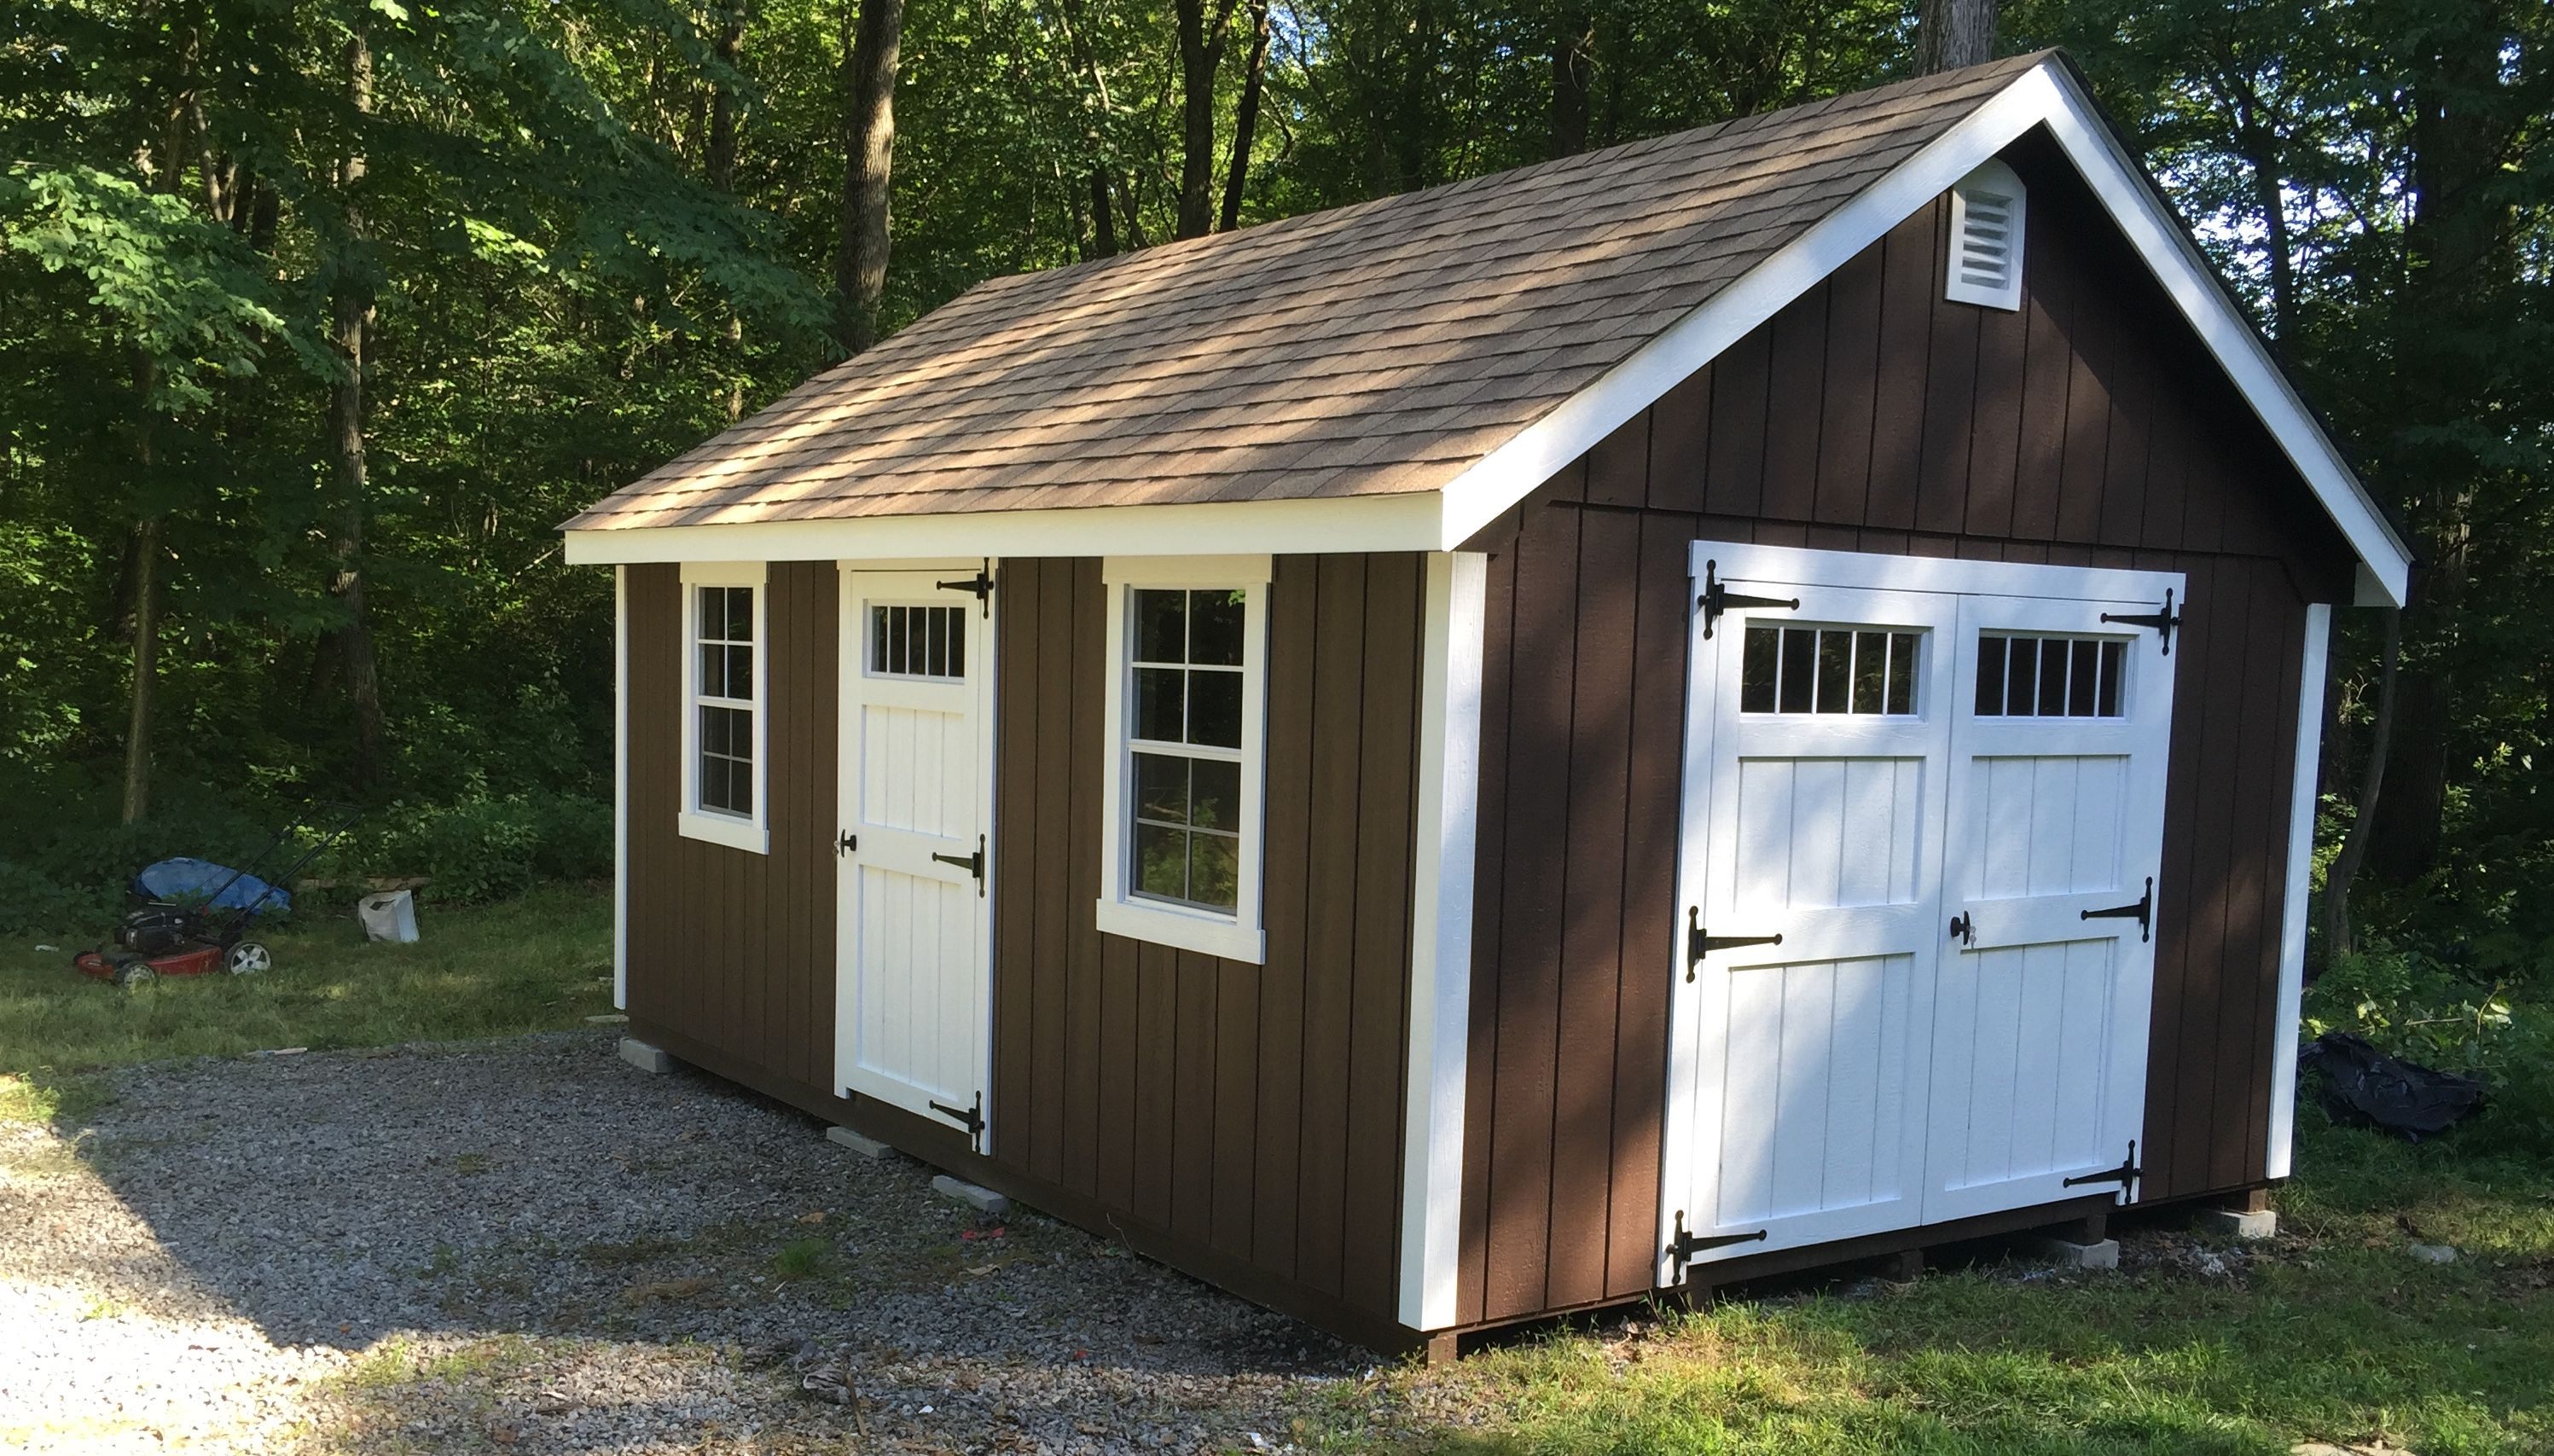 This Custom A Frame Storage Shed From Best In Backyards Of Ny And Ct Features Bright White Trim And Doors Against A Deep Bro Outdoor Sheds Pool Shed Ideas Shed